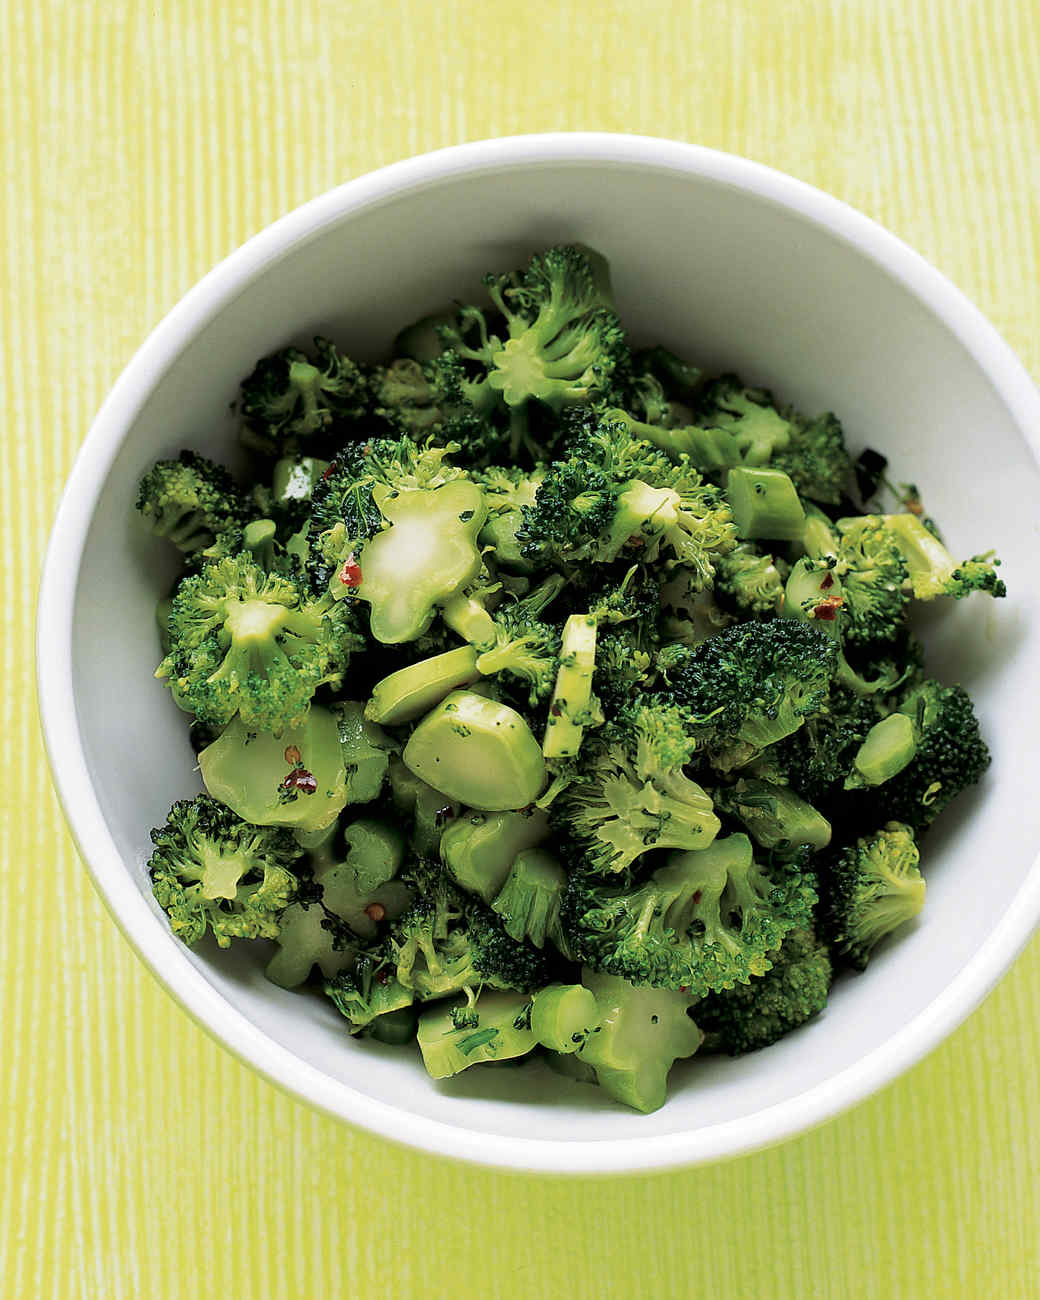 Cooking Frozen Broccoli for Ultra-Fast Nutritious Dinners